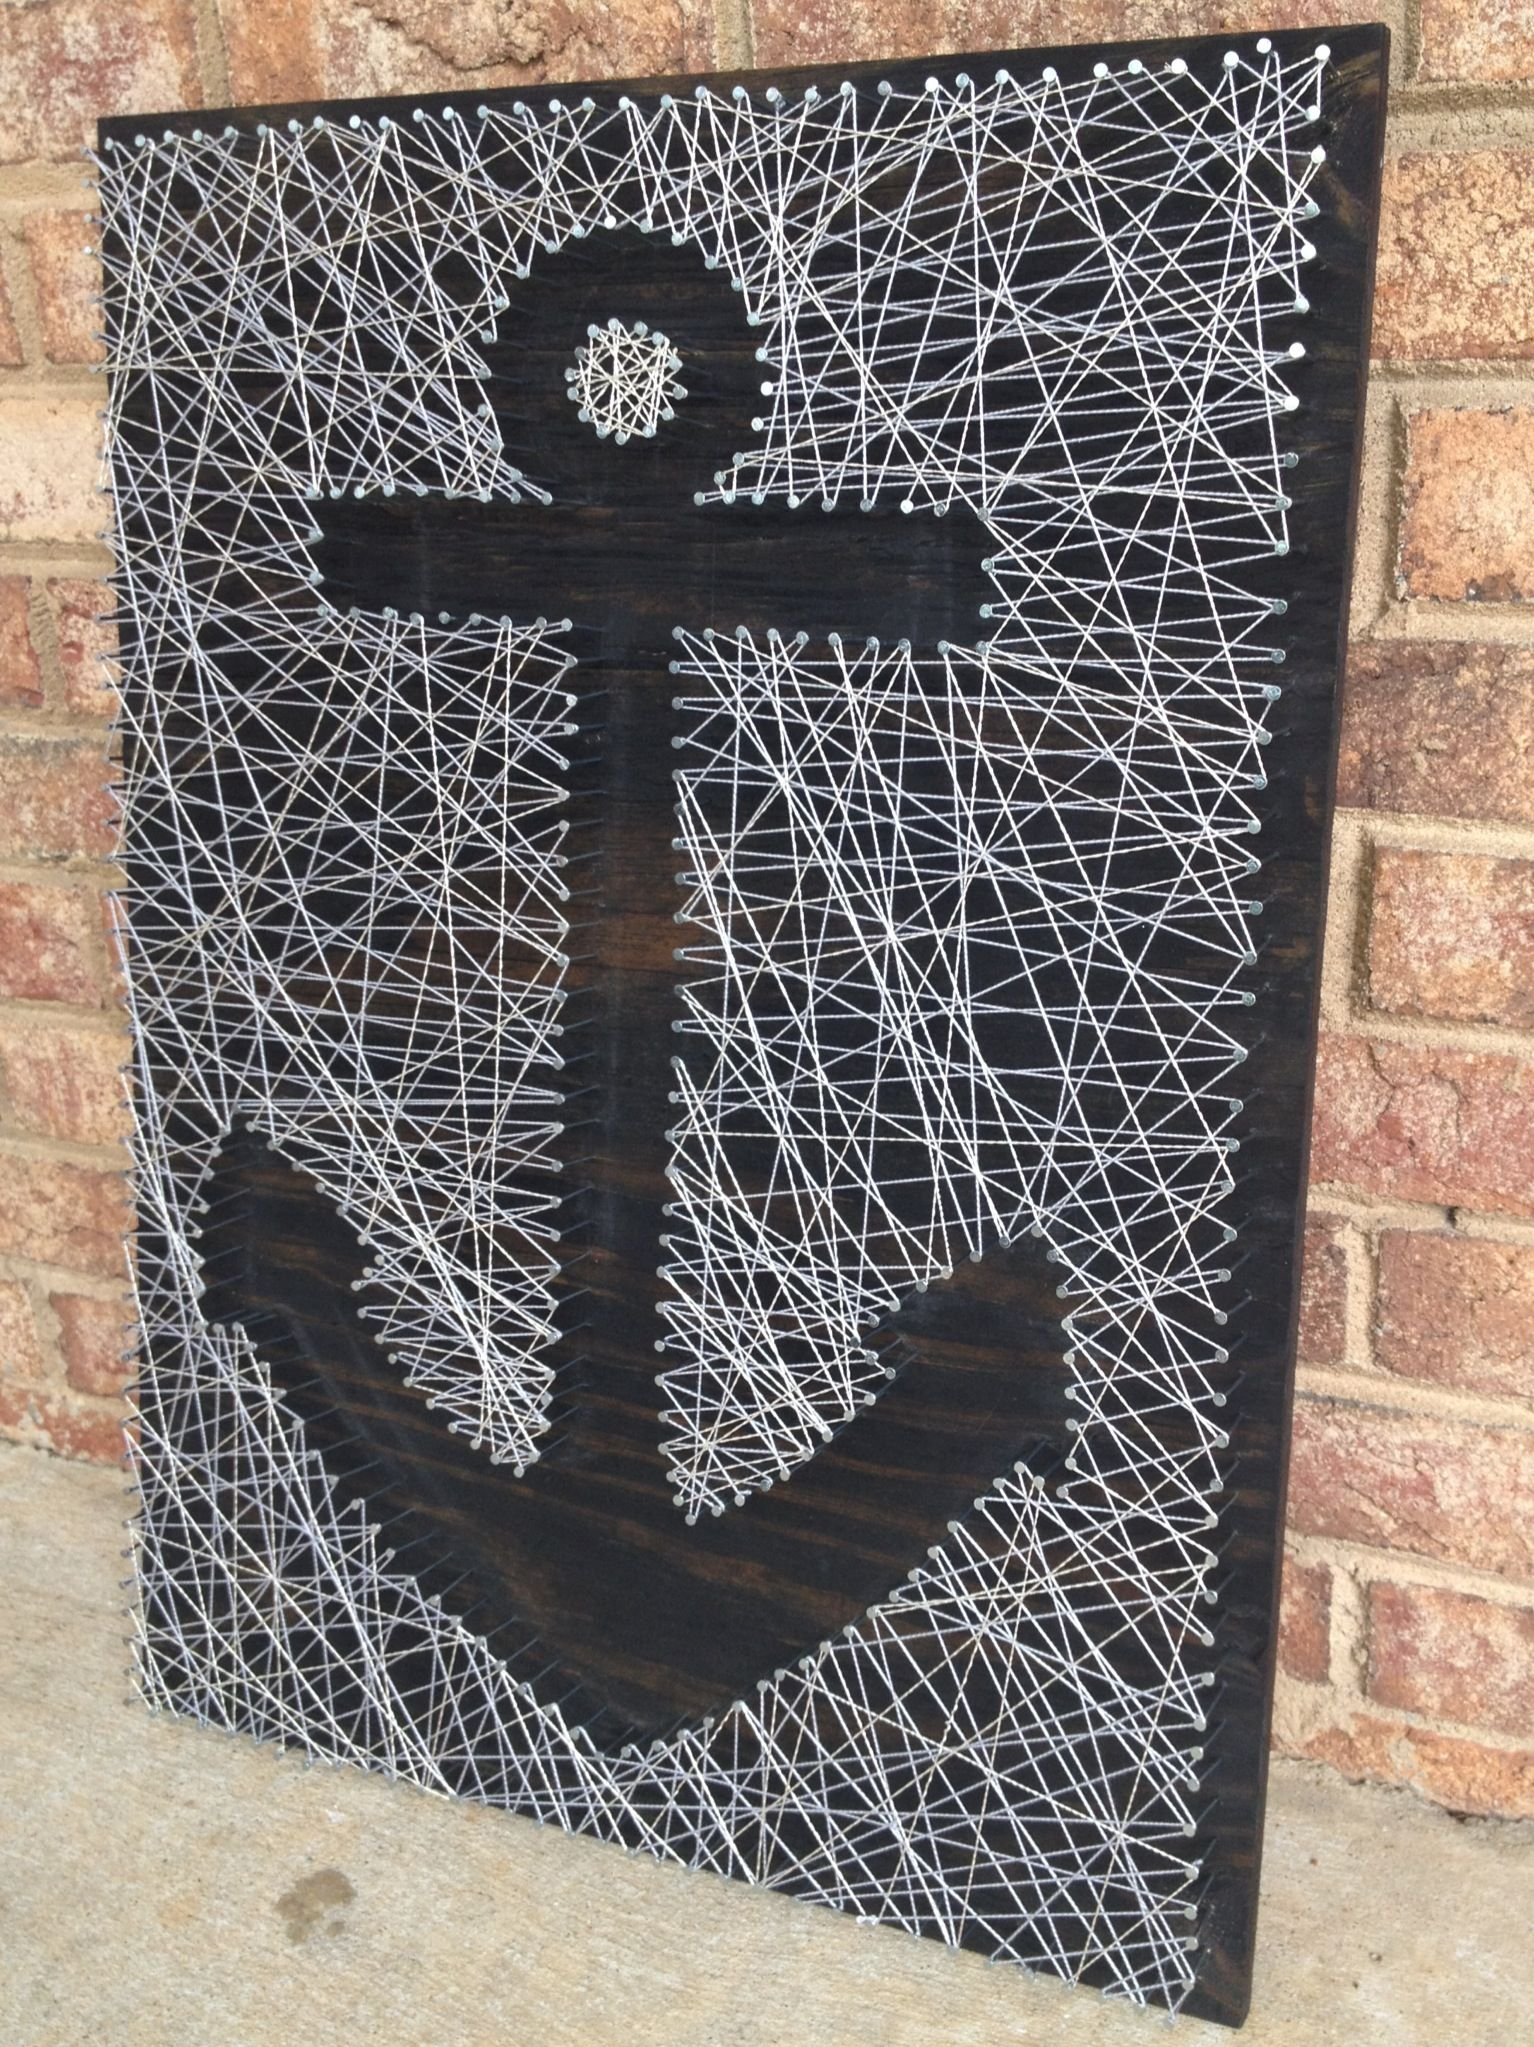 Etsy: http://www.etsy.com/listing/165064421/nail-and-string-art ...